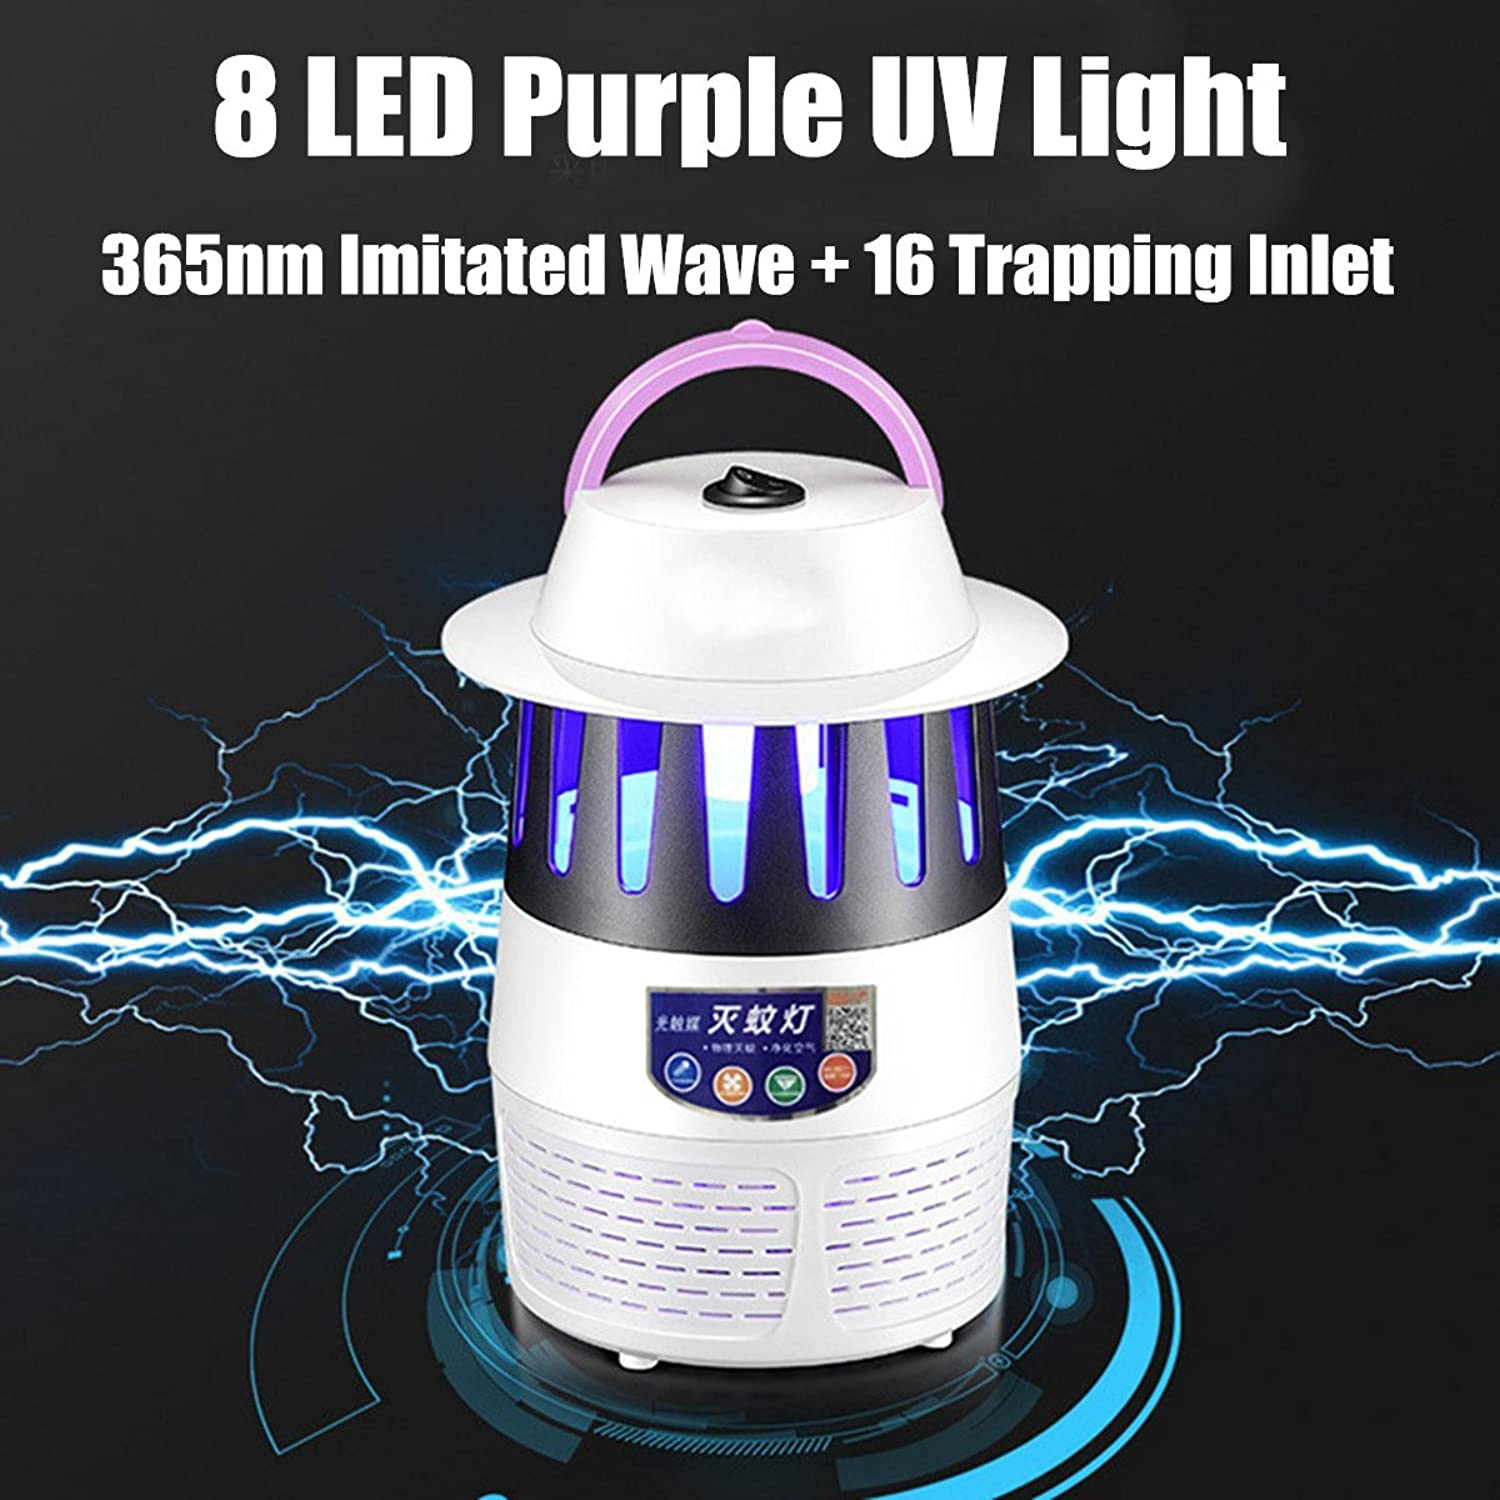 USB LED Electric Insect Killer UV Mosquito Fly Bug Zapper Catcher Traps Light Home Garden Pest Control Supplies Accessories